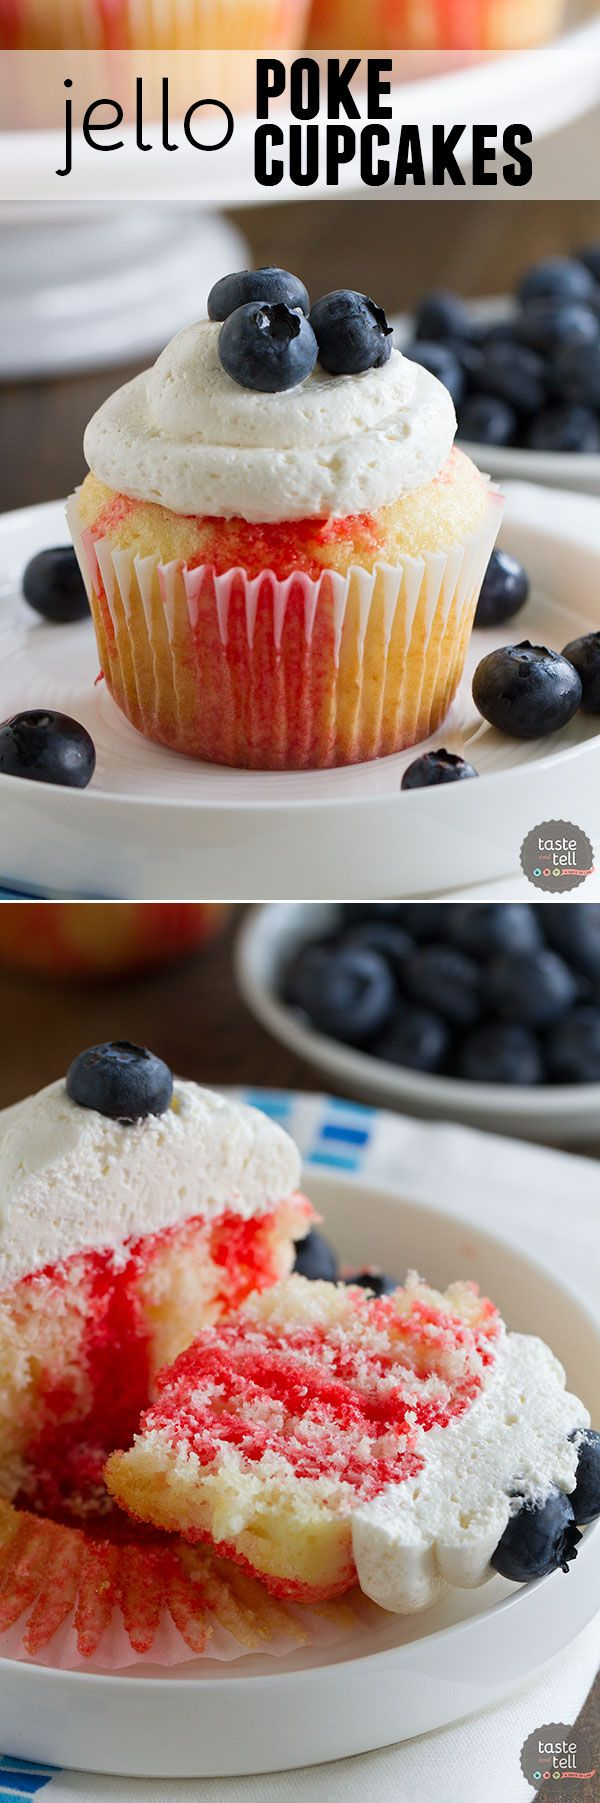 Cupcakes go patriotic with these Jello Poke Cupcakes that are streaked with red, then topped with white and blue. You can easily change the jello flavor and the topping for different holidays or flavors.